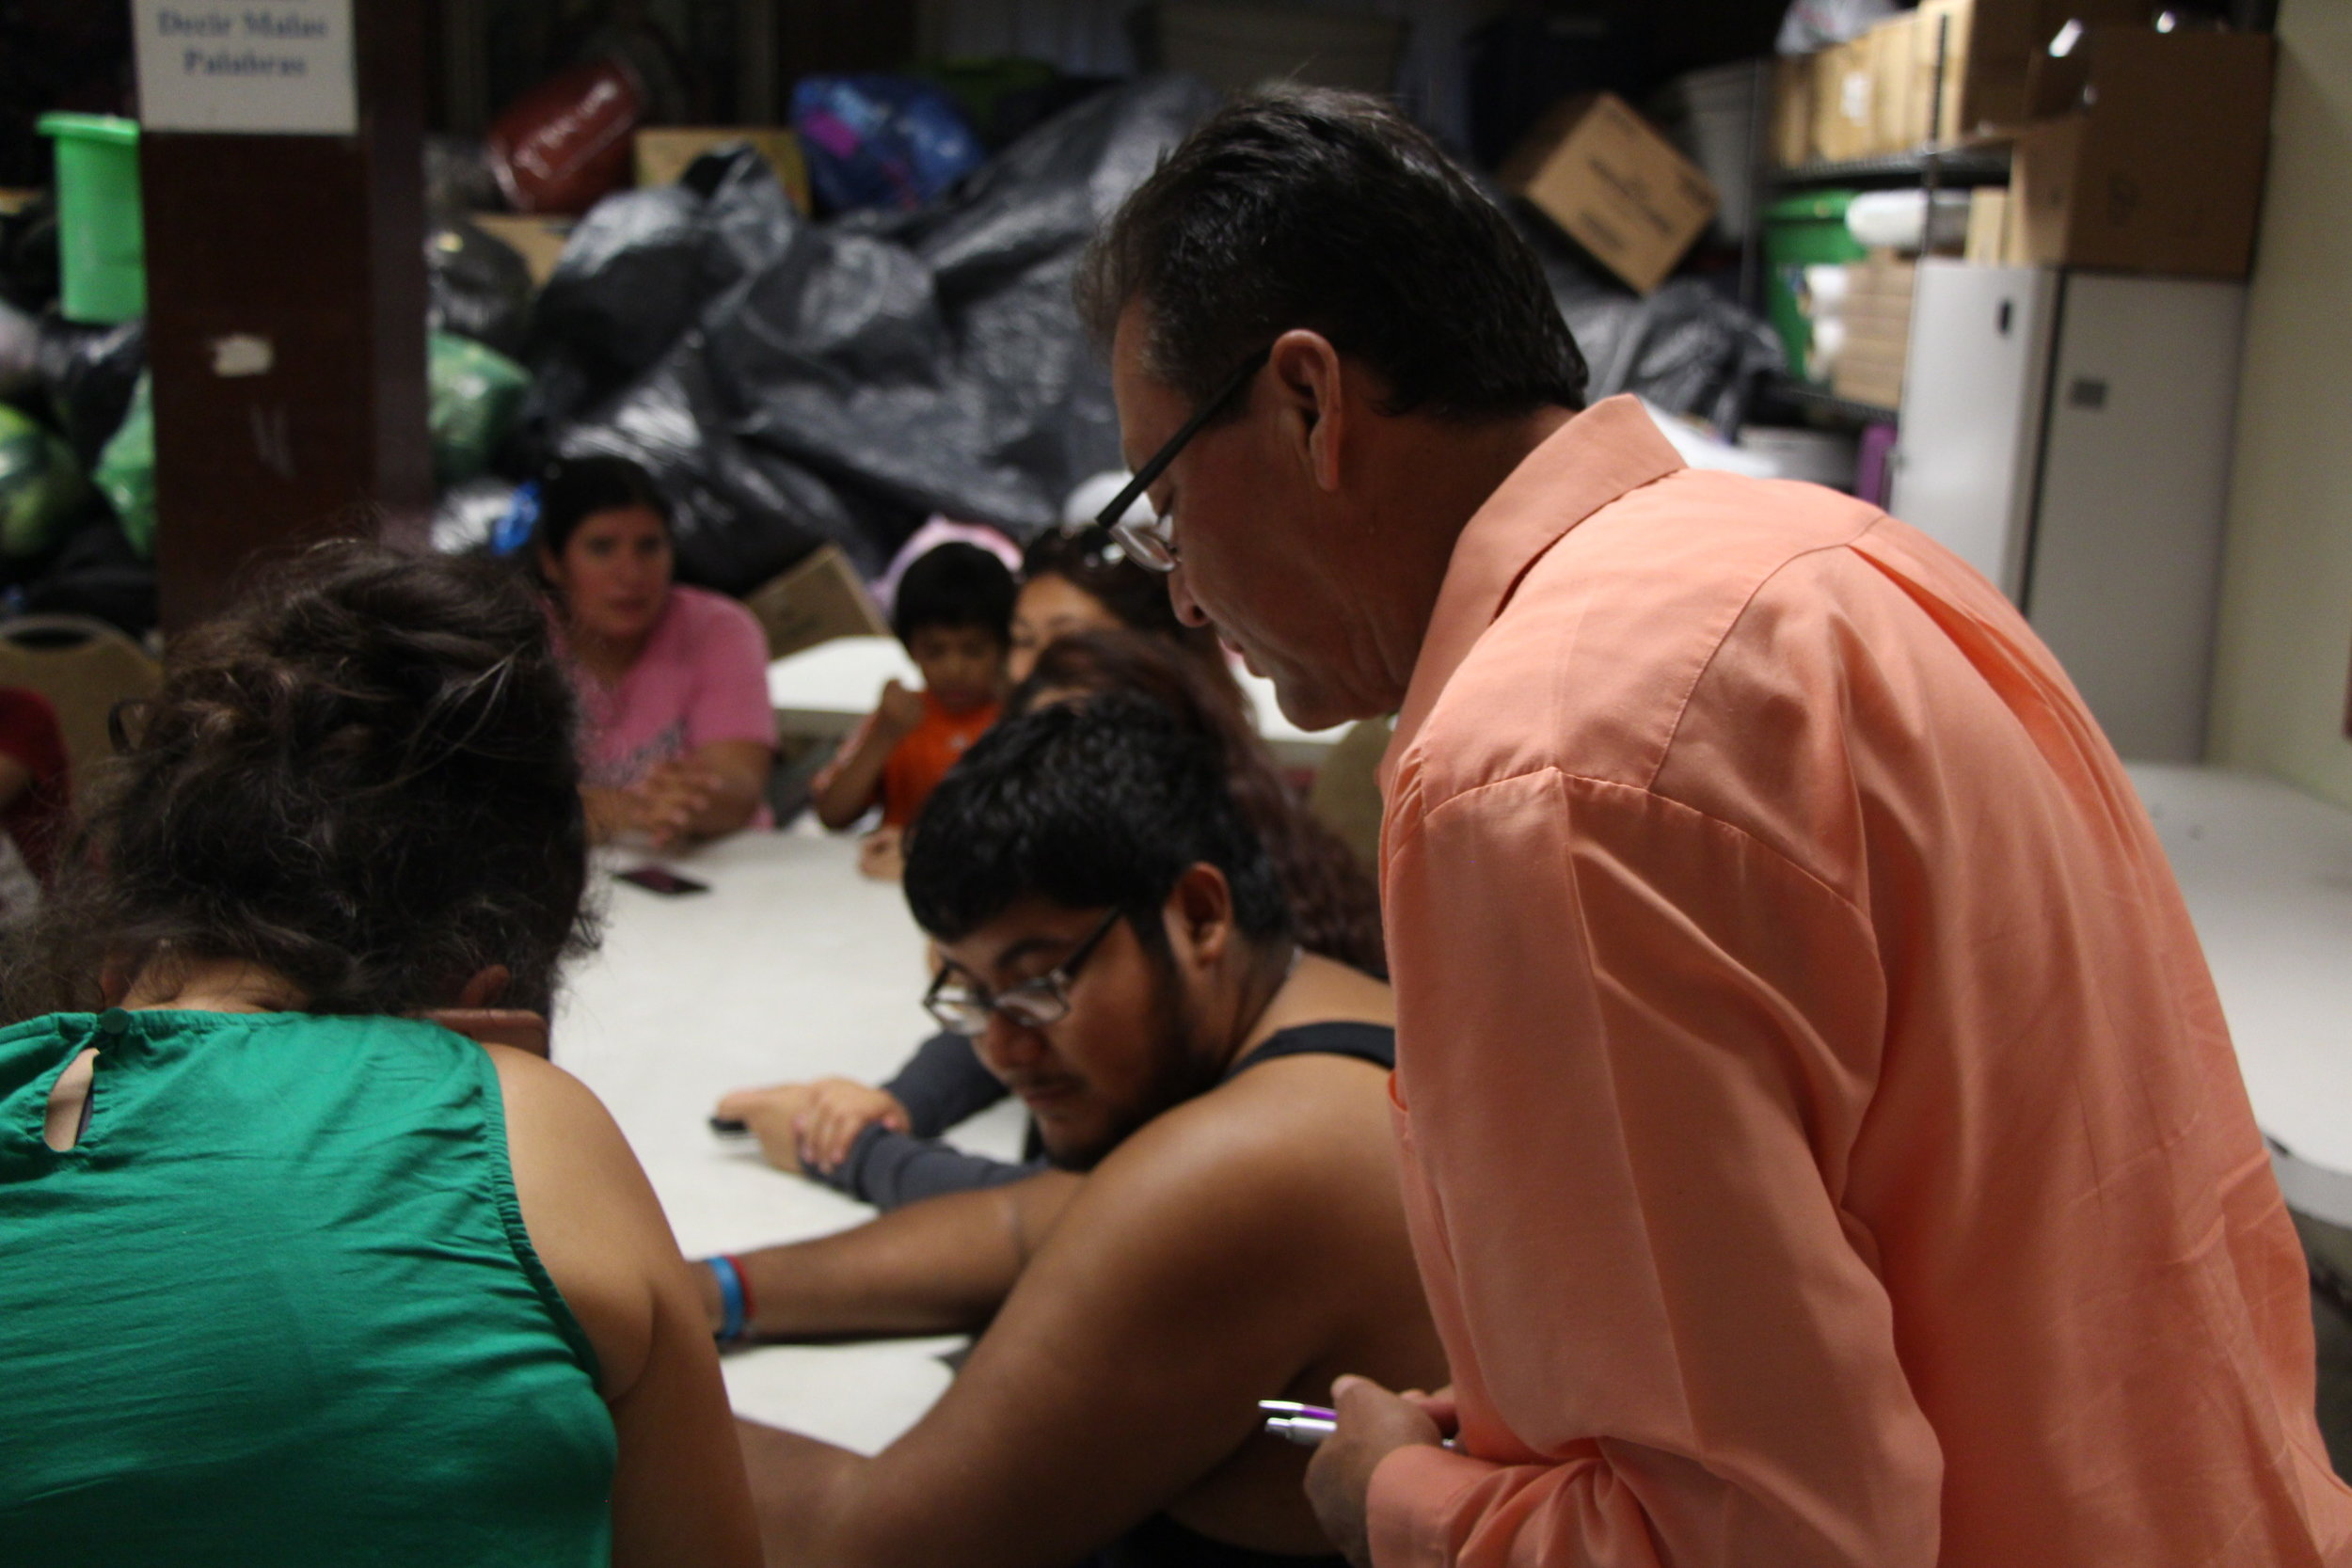 Pastor Ramiro Rodriguez speaks with volunteers before sitting down to a meal after a long day of collecting and sorting donations for the families who lost children and homes.